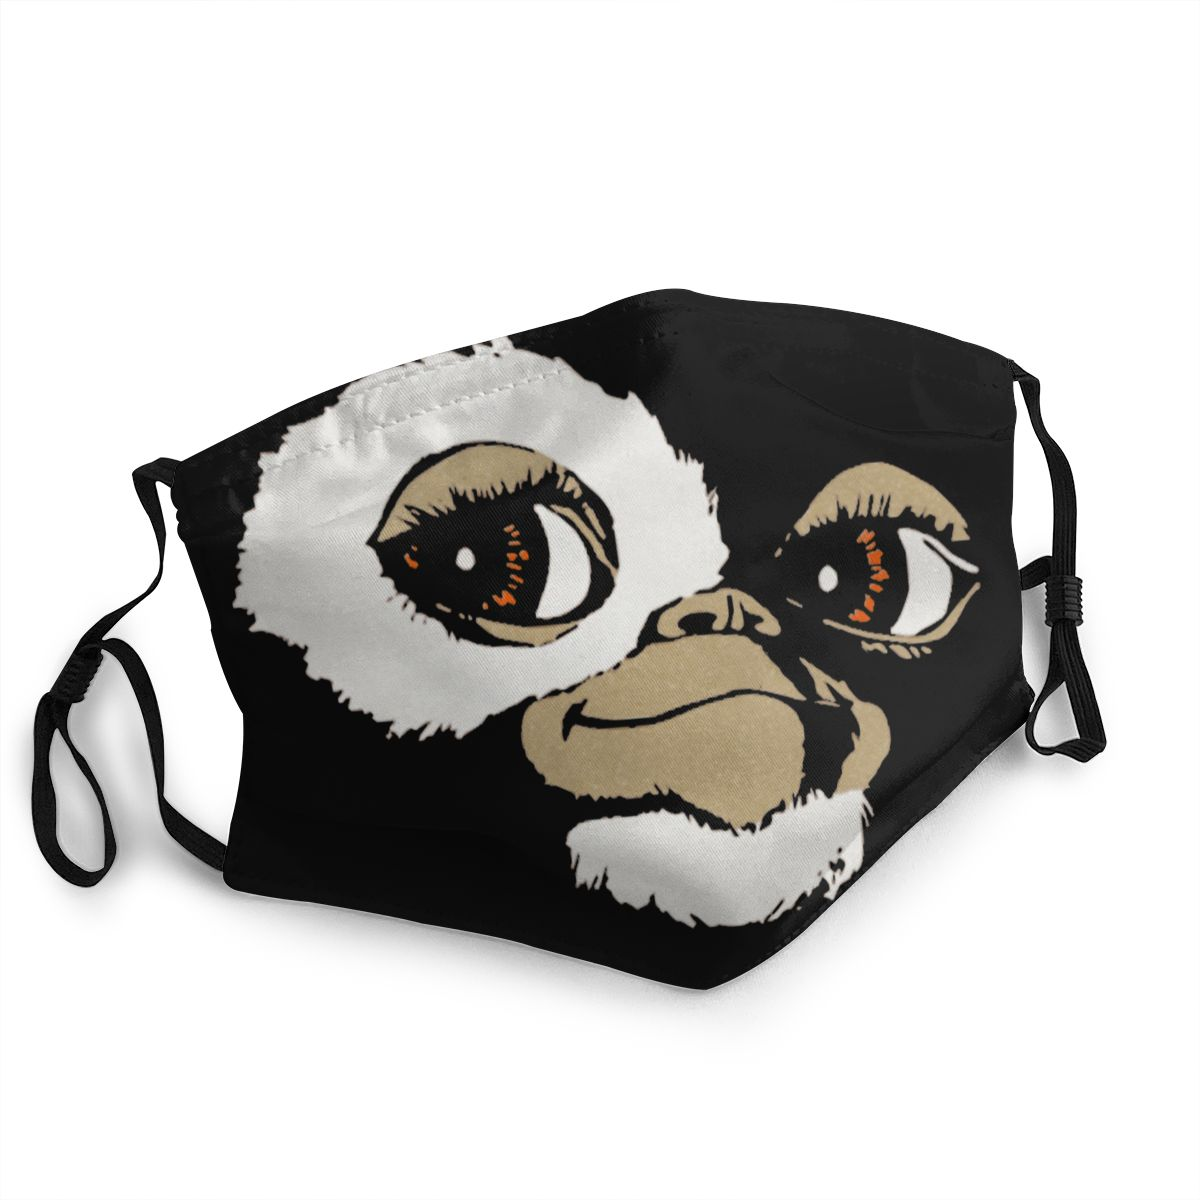 Gremlins Gizmo Non-Disposable Face Mask Monster Anti Haze Dust Mask Protection Mask Respirator Mouth Muffle